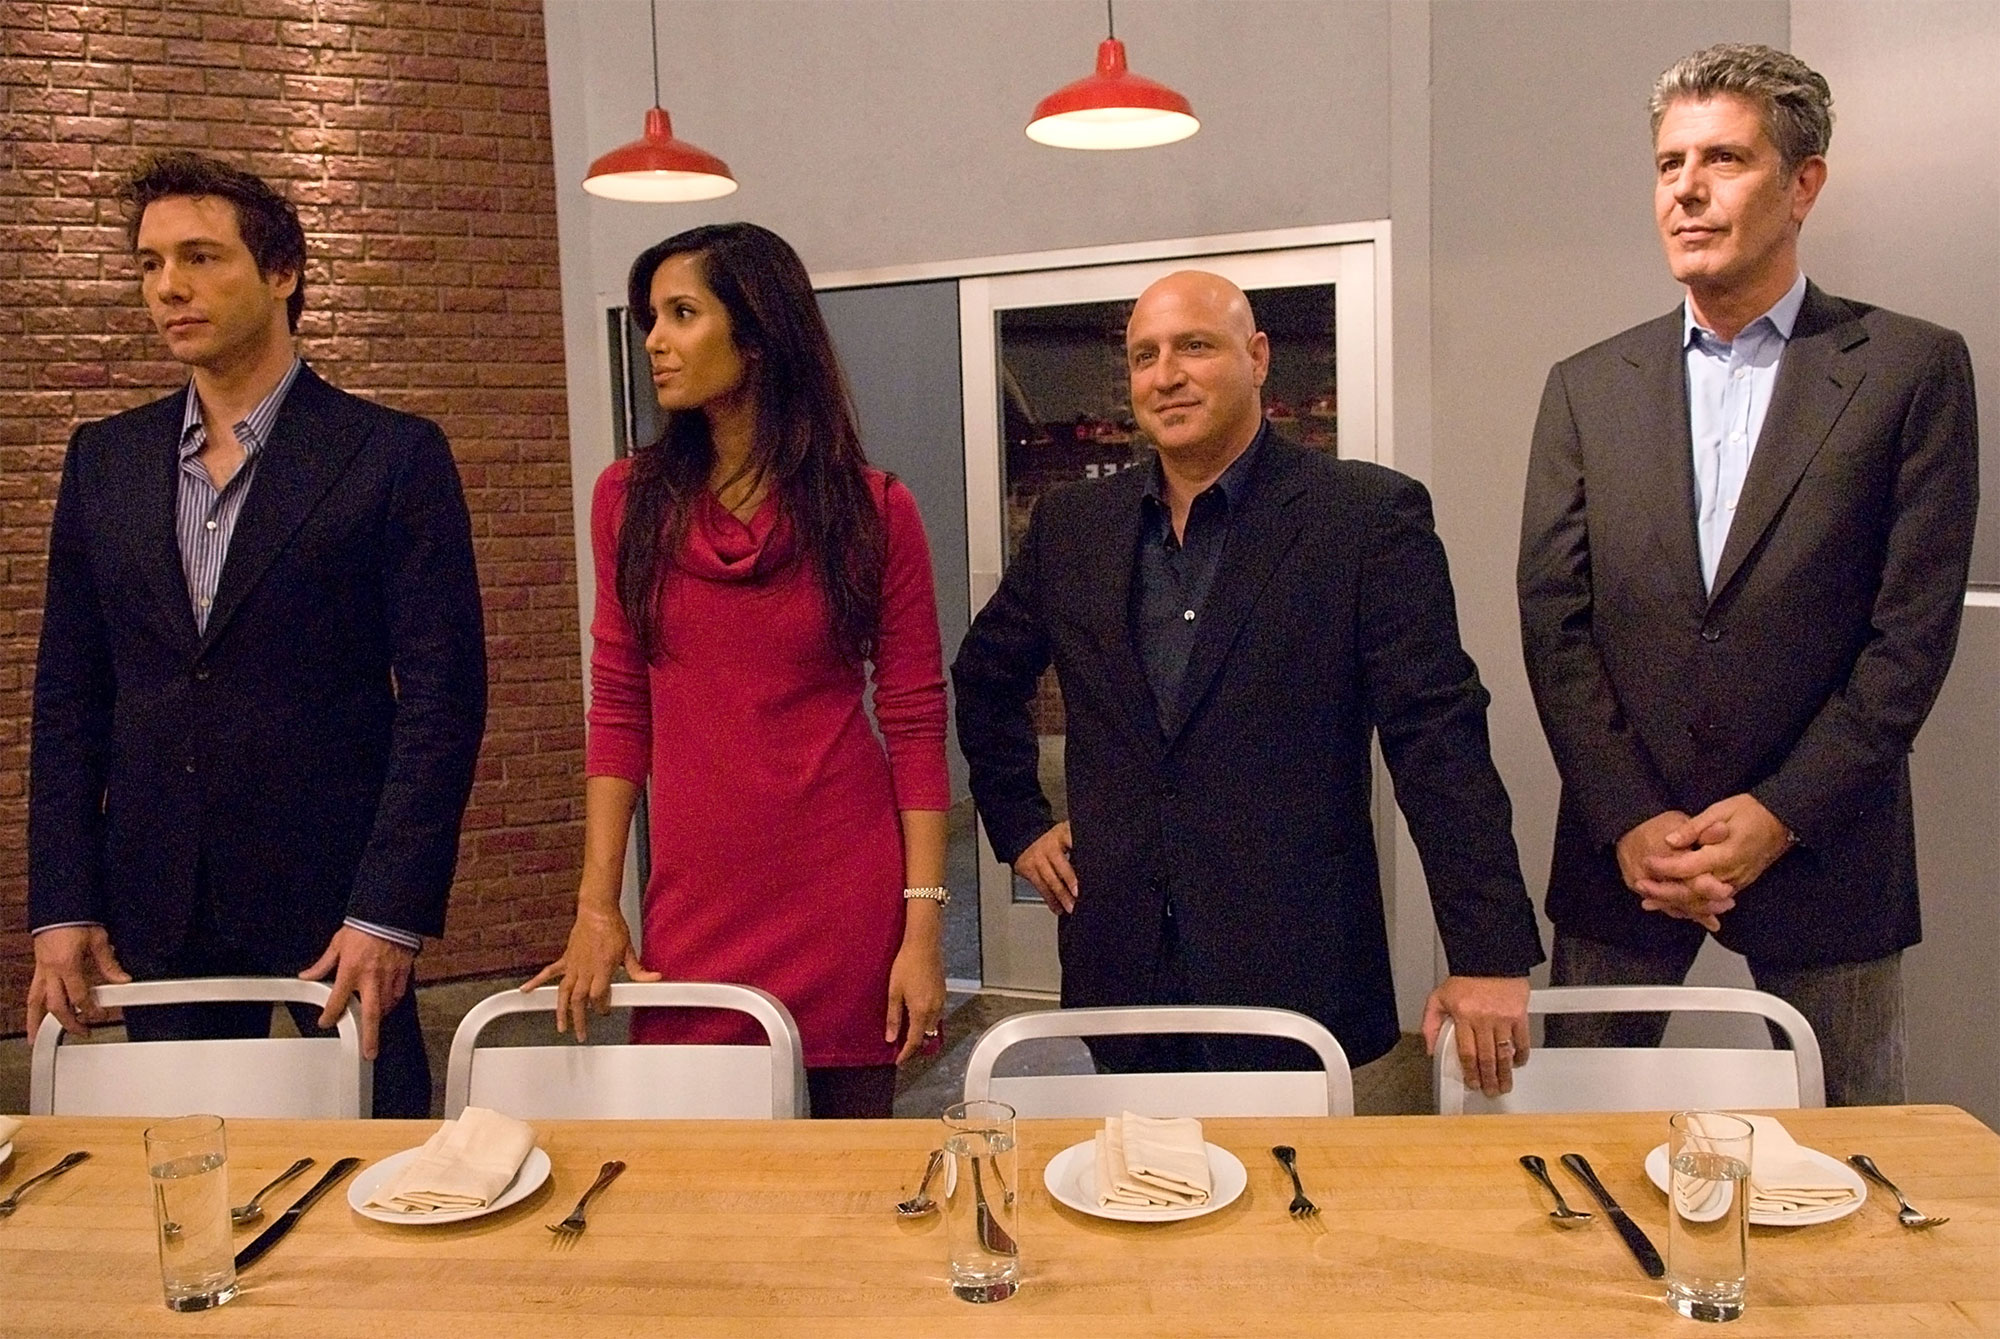 TOP CHEF, Chef Rocco DiSpirito, Host Padma Lakshmi, Host Tom Colicchio, Chef Anthony Bourdain, (Seas